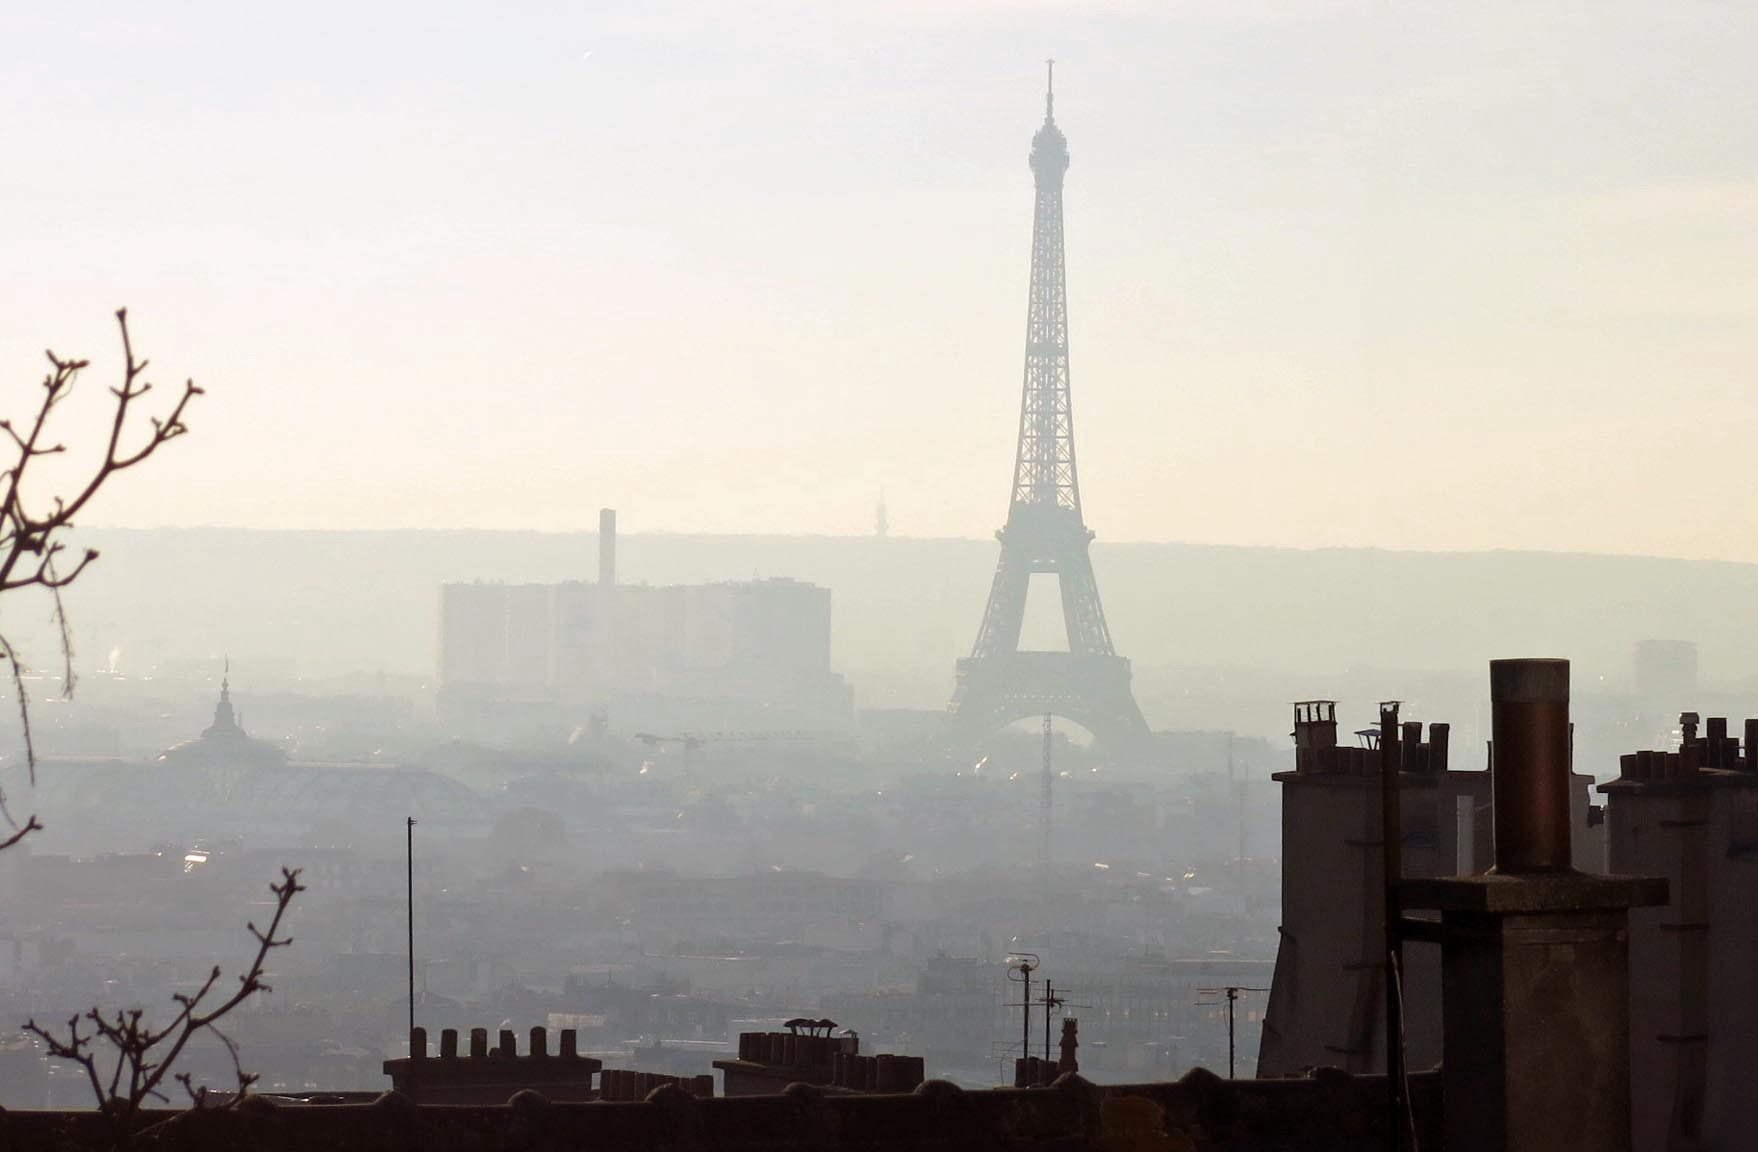 Prototype air filtering stations placed in Paris, France, helped to keep the level of particulates below World Health Organization thresholds. Image credit - Pollution event in Paris by Tangopaso and Mariordo is licensed under CC0 1.0